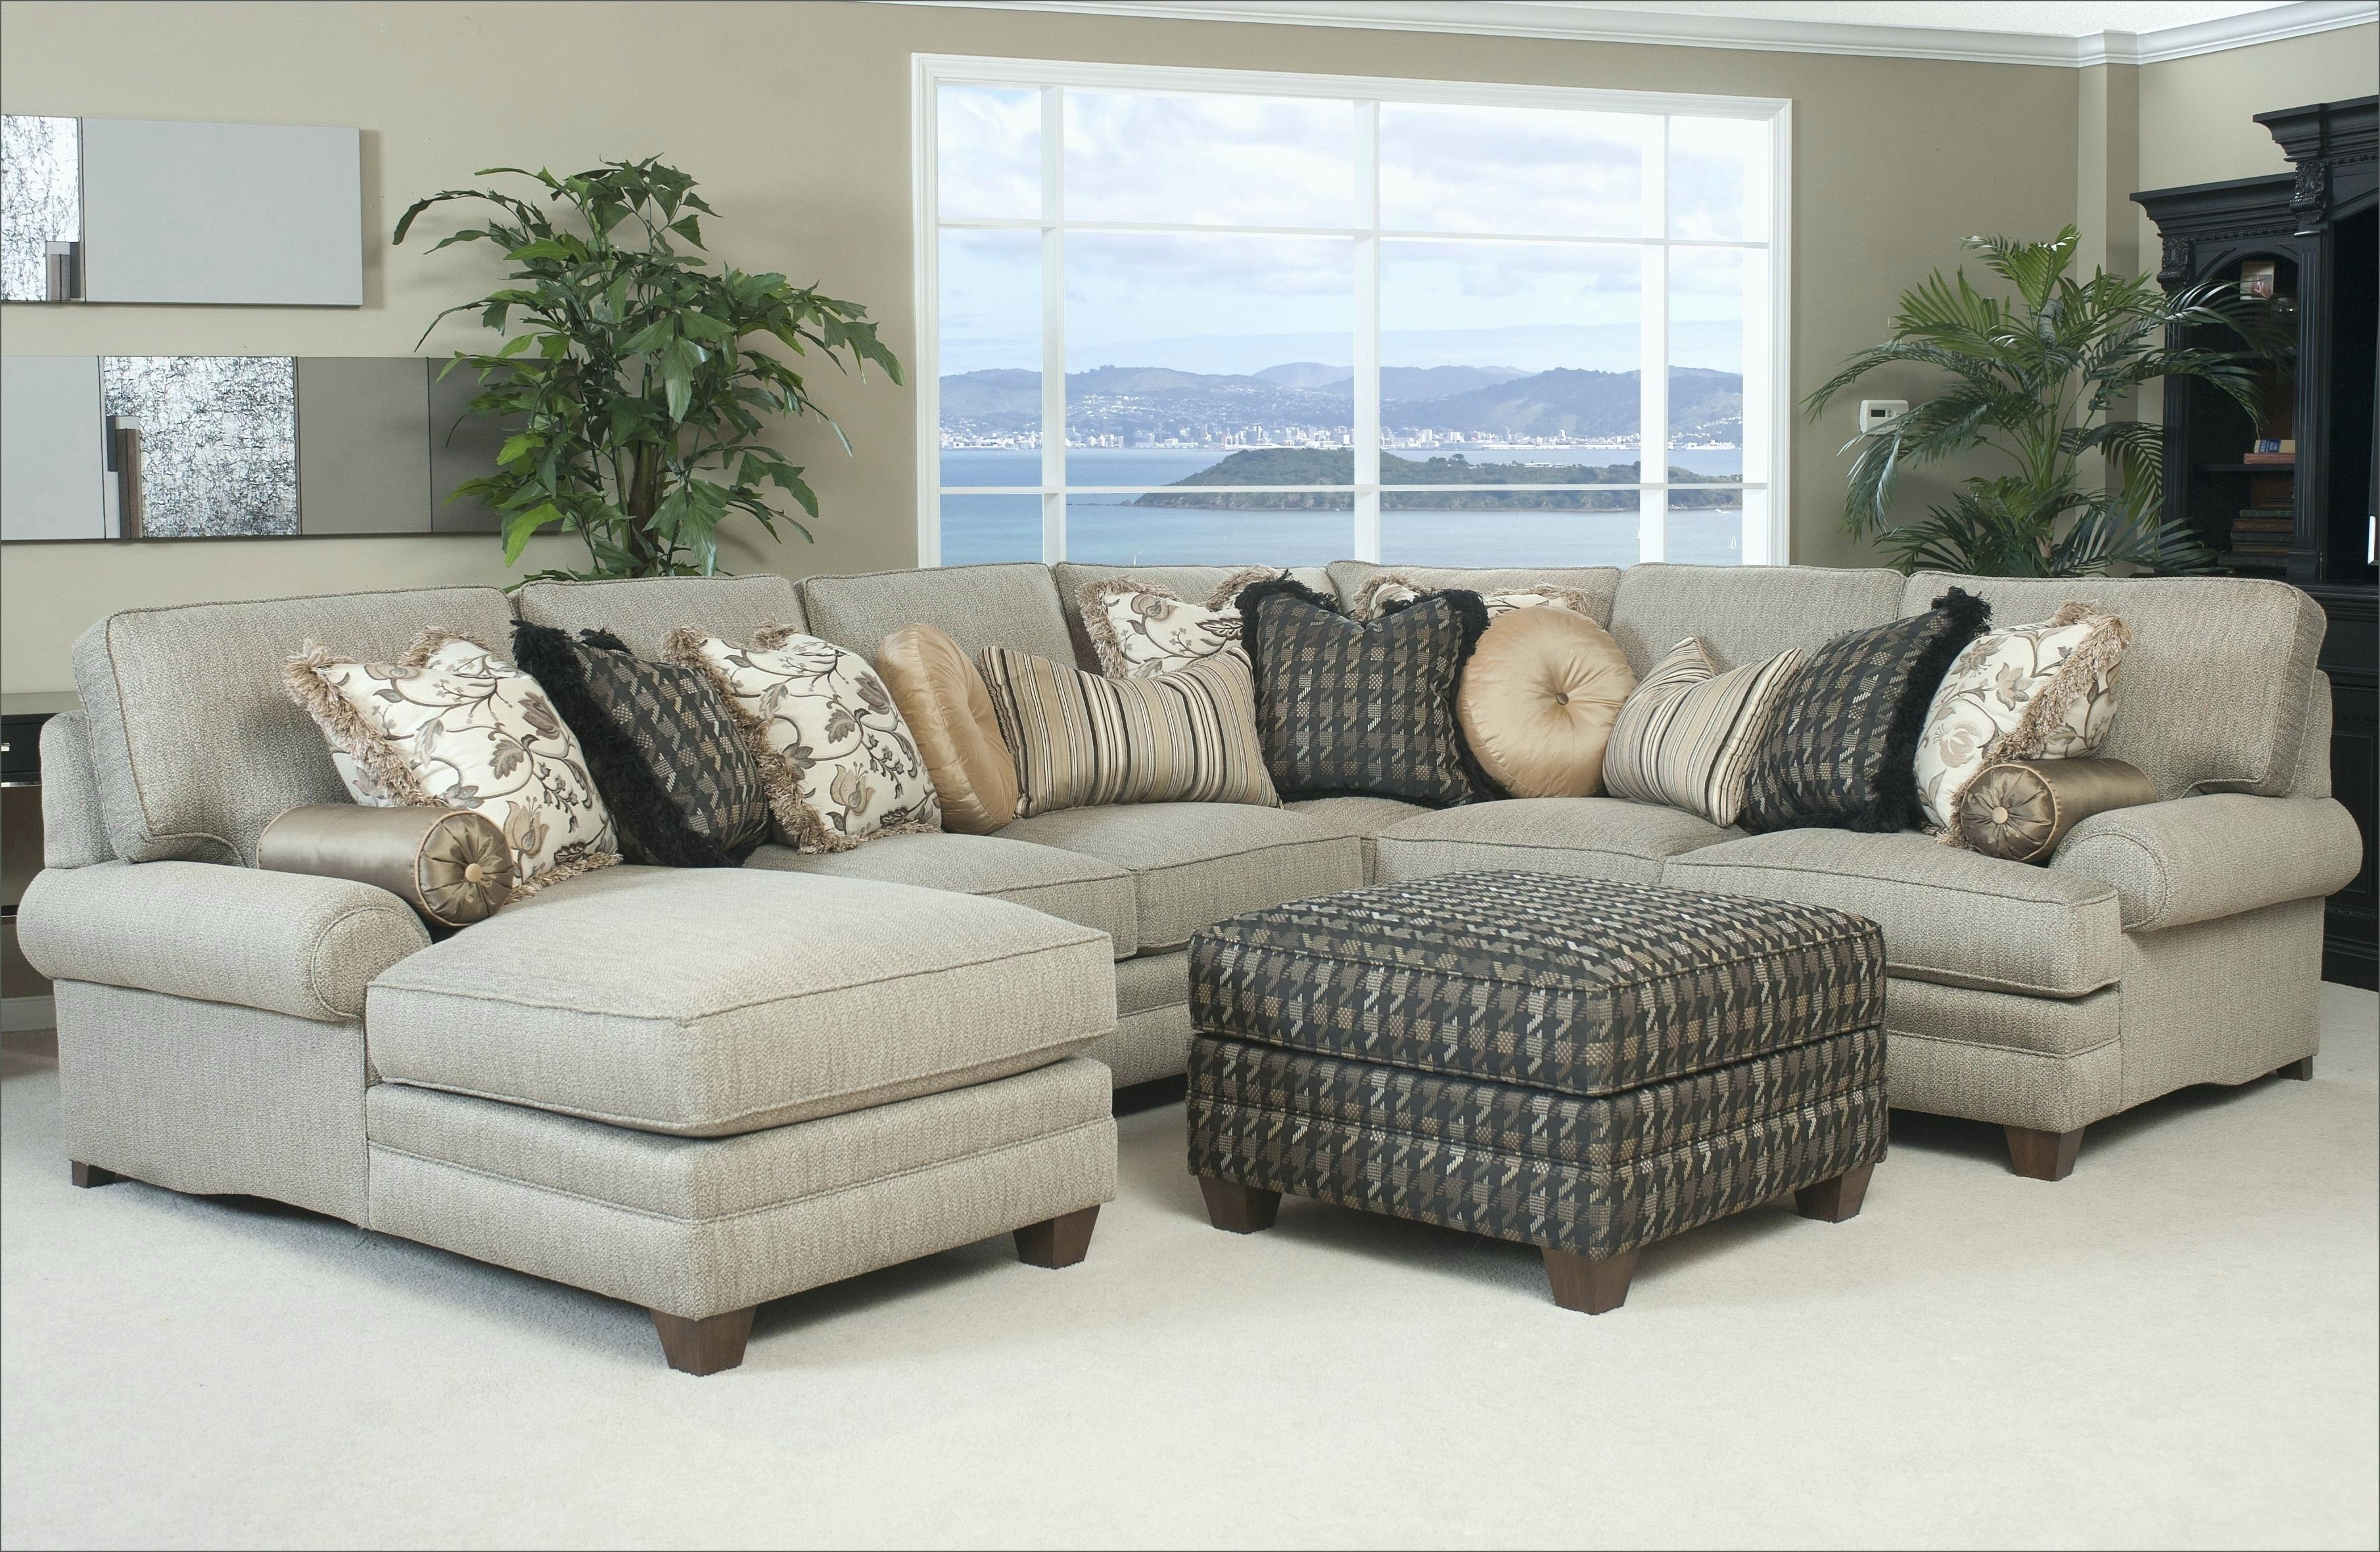 Sofa : Clearance Sale On Sectional Sofa Piece Amazon Salesectional Throughout Most Recently Released Michigan Sectional Sofas (View 9 of 15)